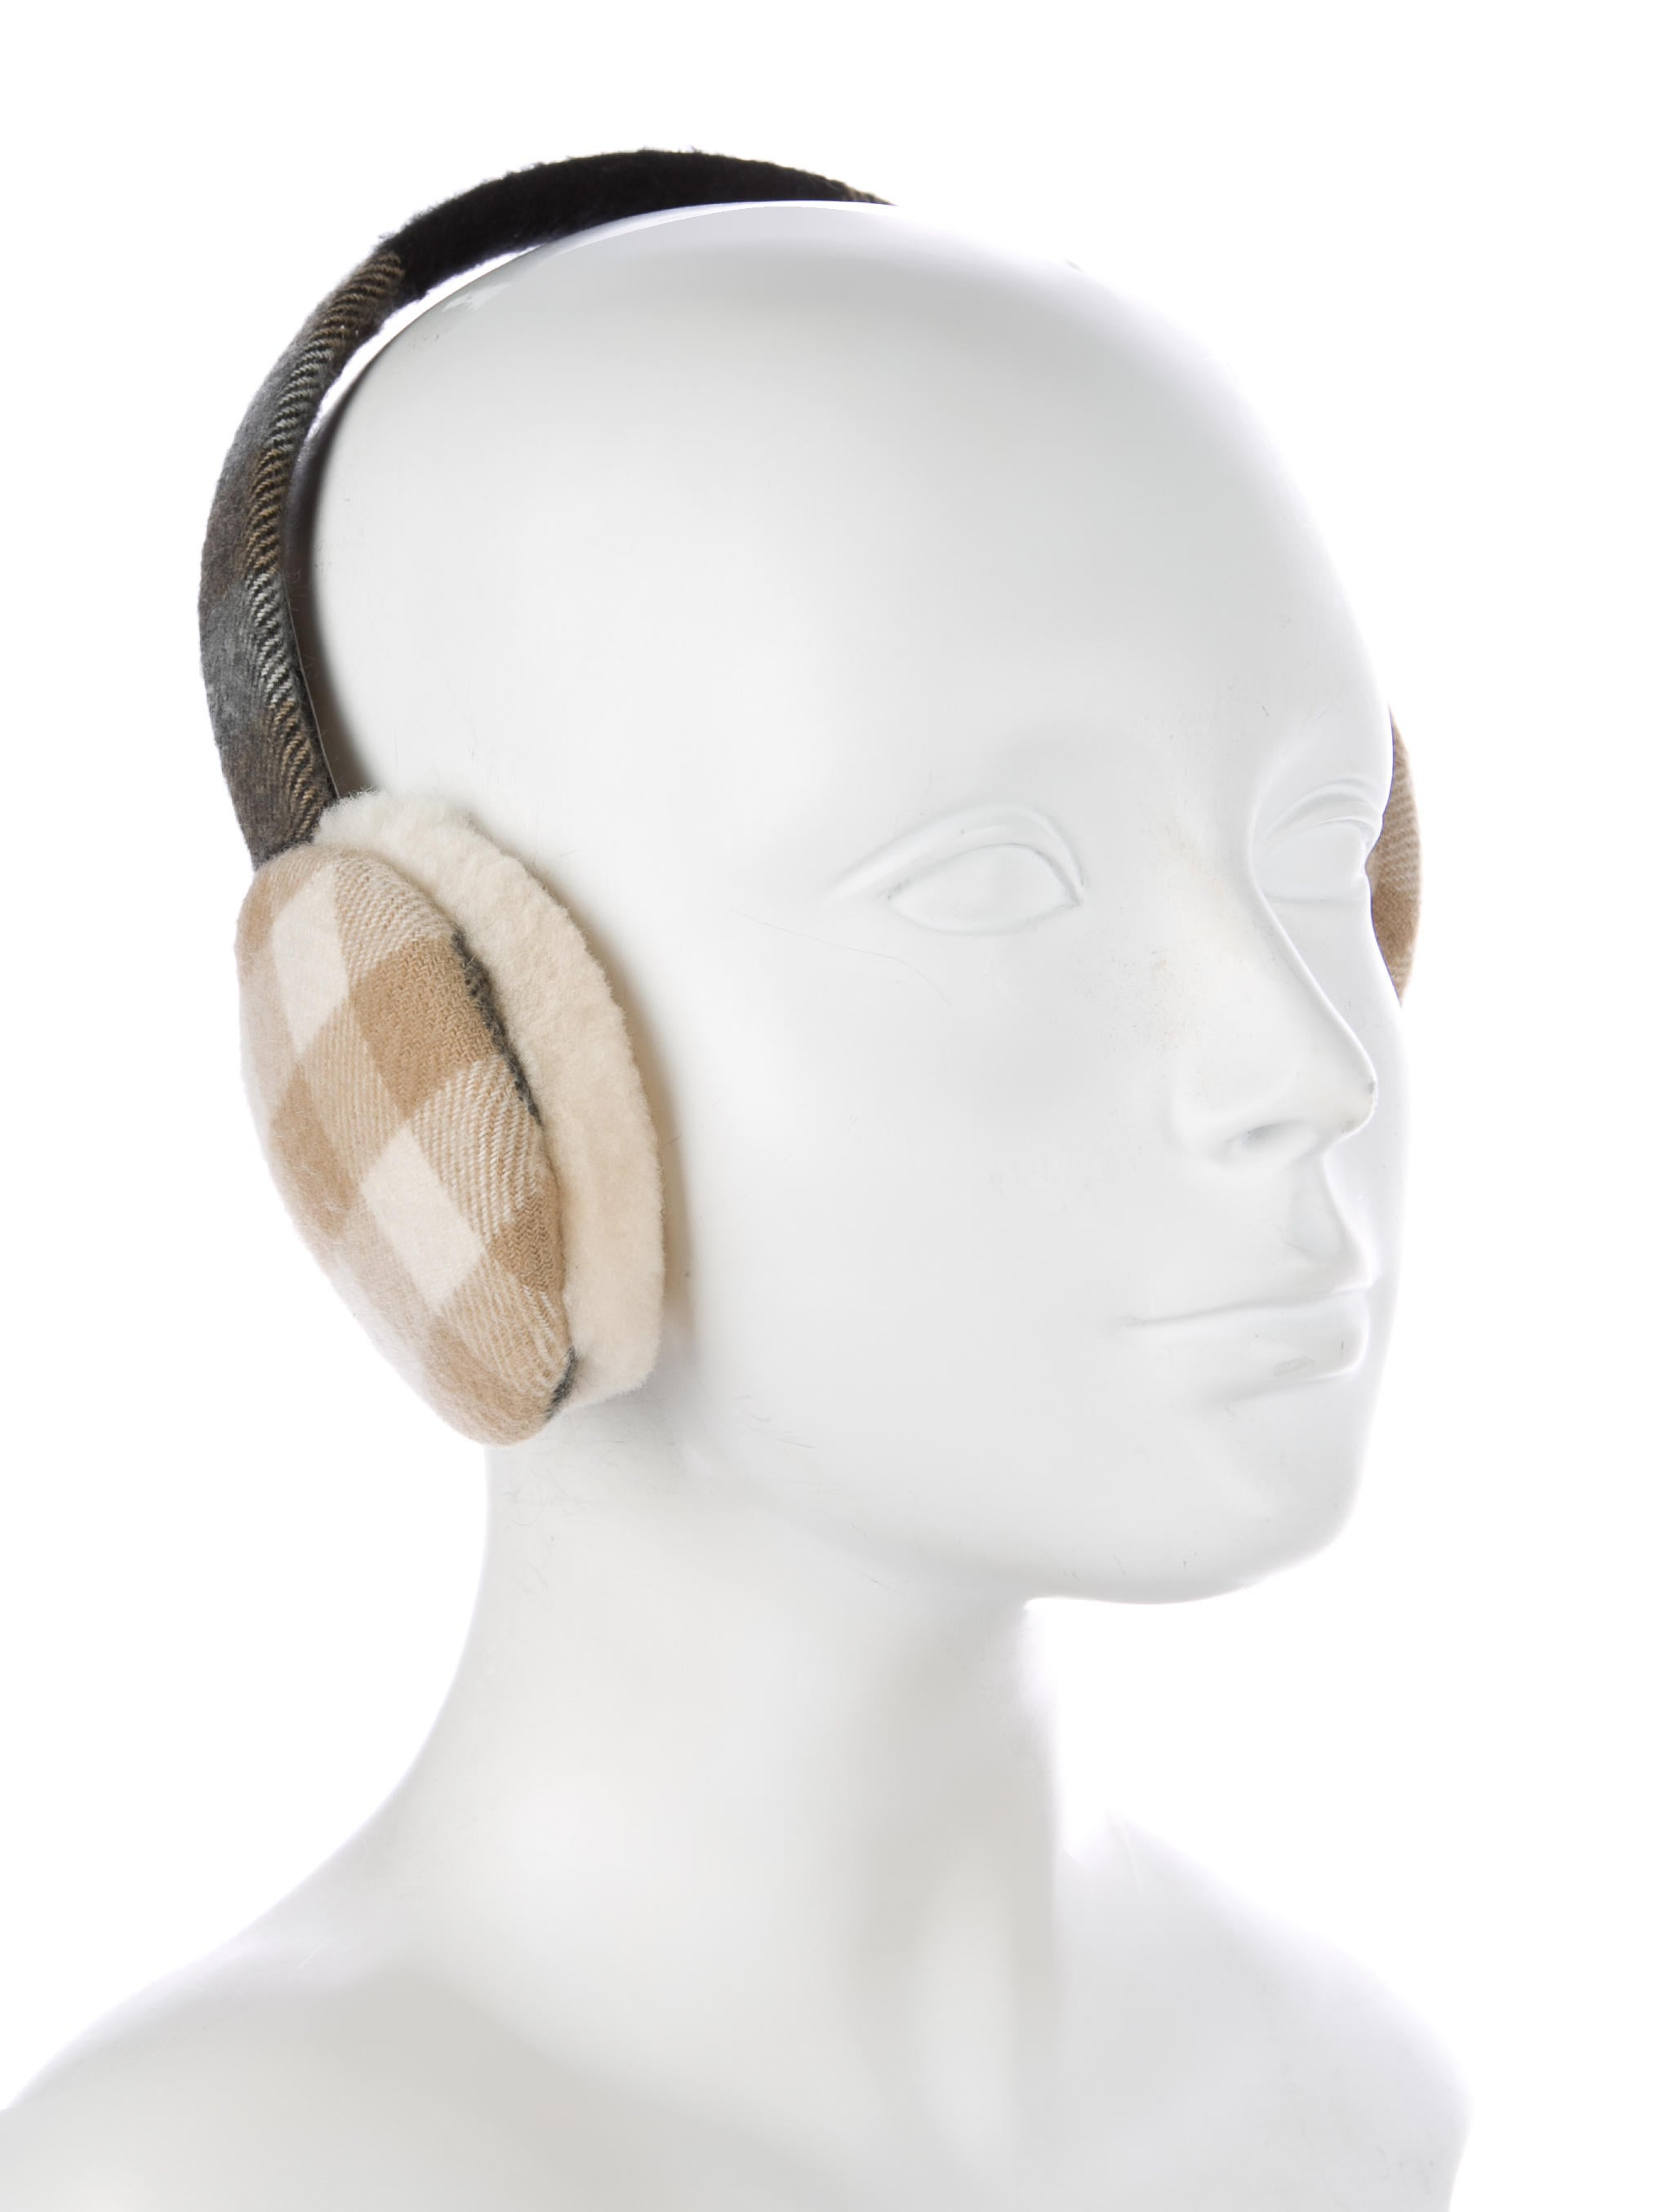 Burberry Nova Check Cashmere Ear Muffs Accessories  : BUR760473enlarged from www.therealreal.com size 2054 x 2710 jpeg 142kB